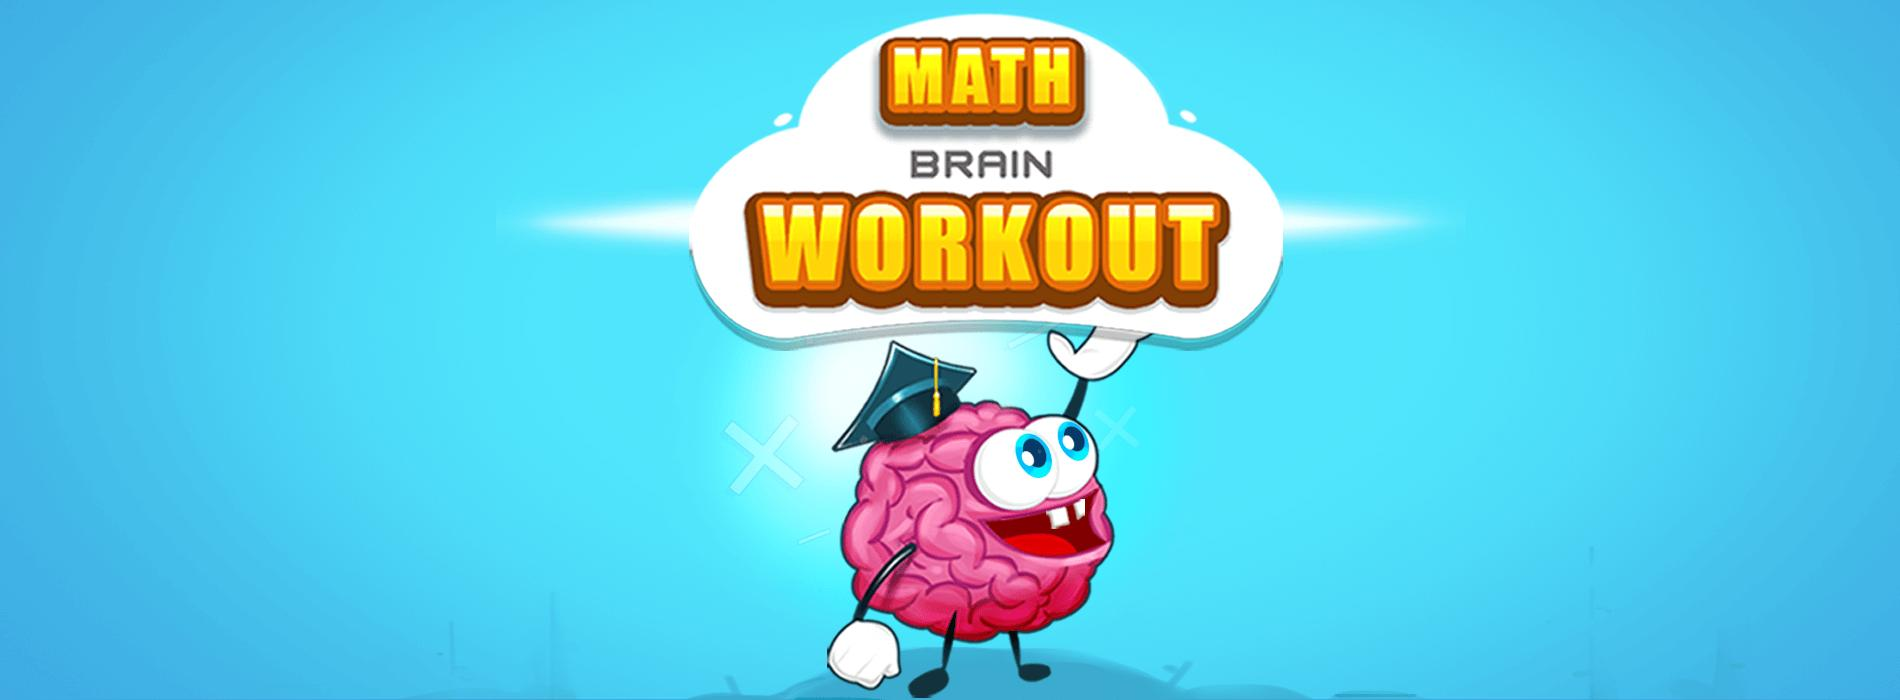 Math Brain Workout Game| Download Free Game and Test your Math Skill